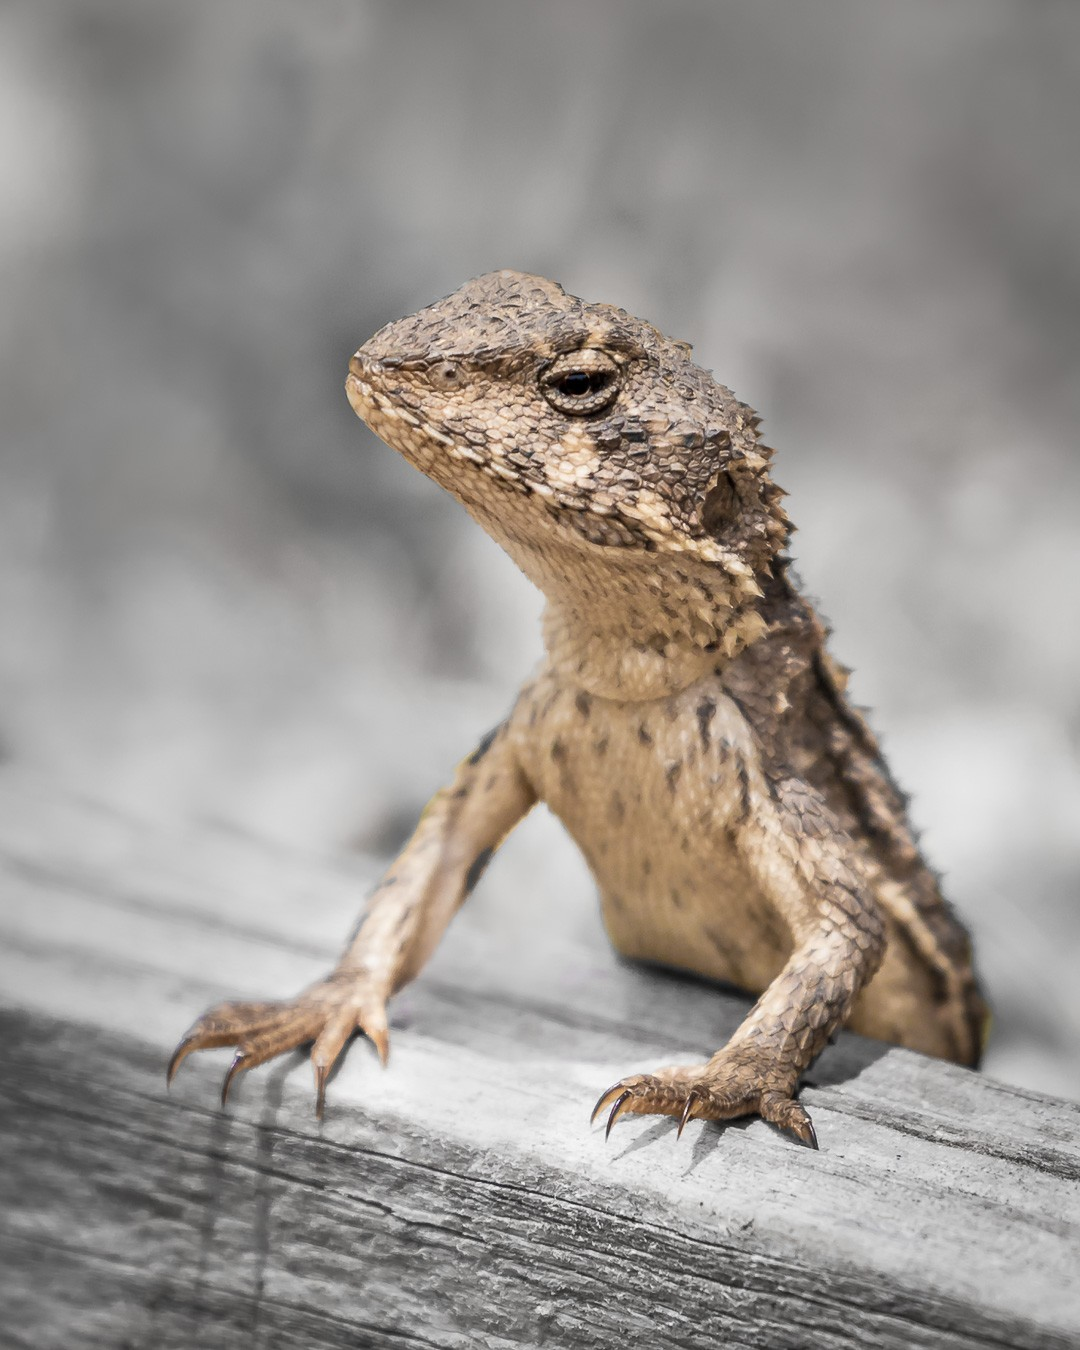 Having not ever seen a Mountain Dragon in our yard at home ever before, we were quite surprised by this sighting.  Lizards have a tendency to run off into the vegetation the moment we come across them. And more often